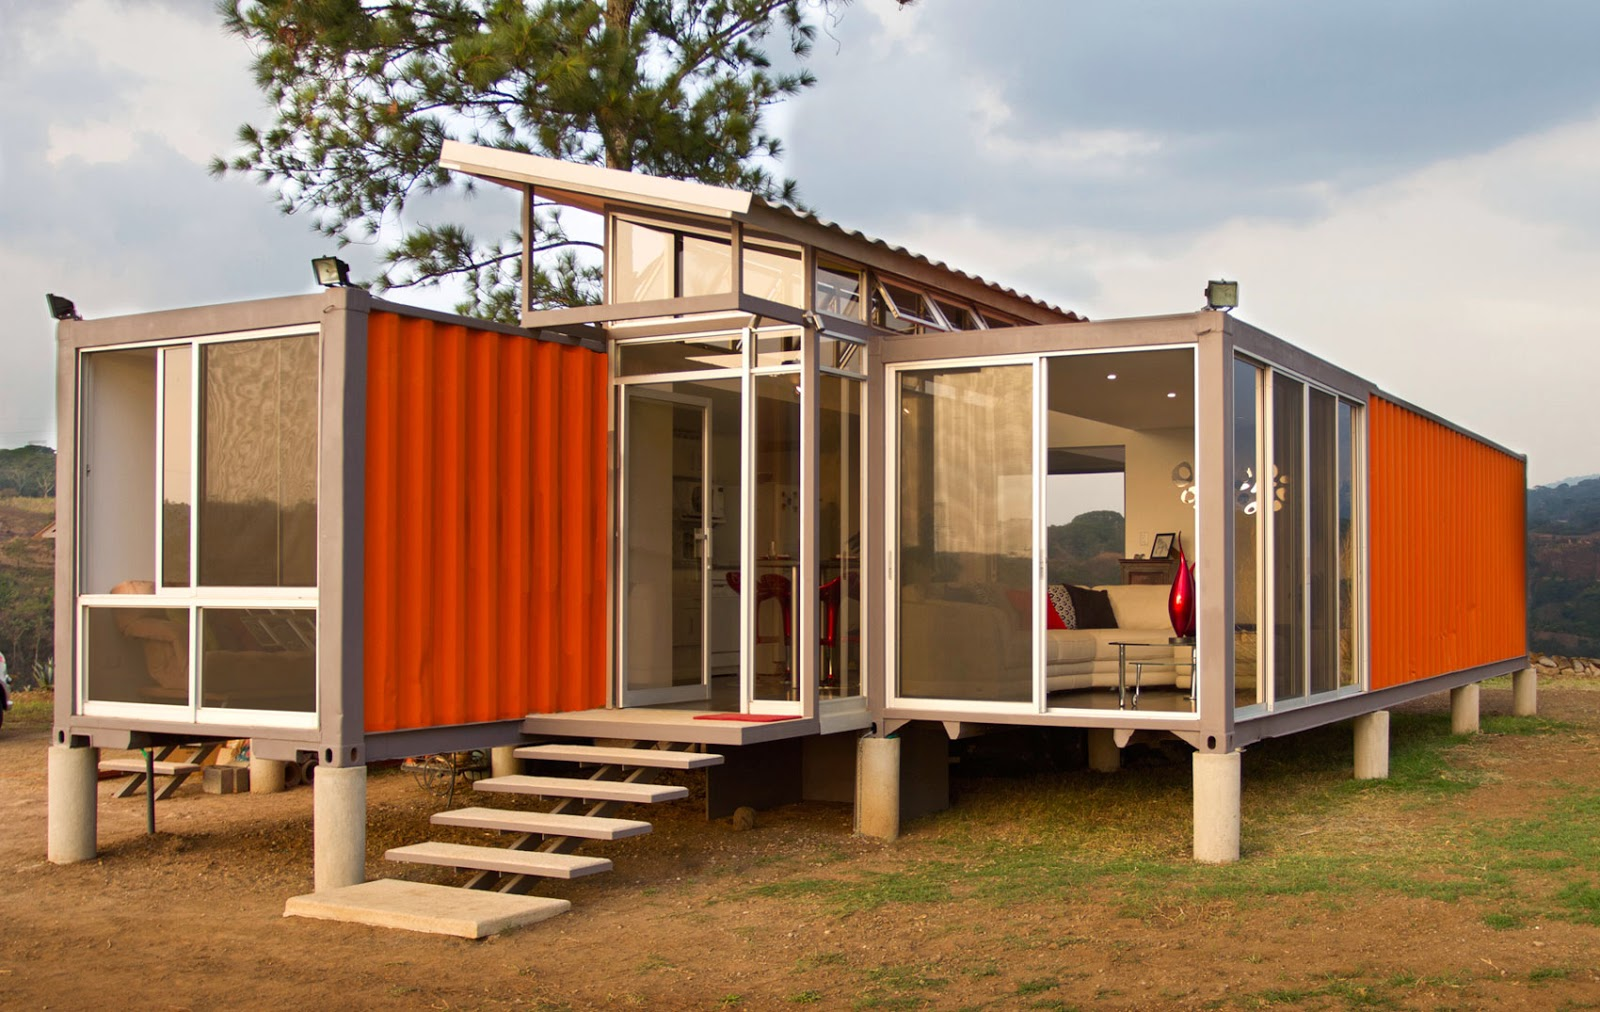 5 shipping container homes that inspire your inner architect - Storage containers as homes ...